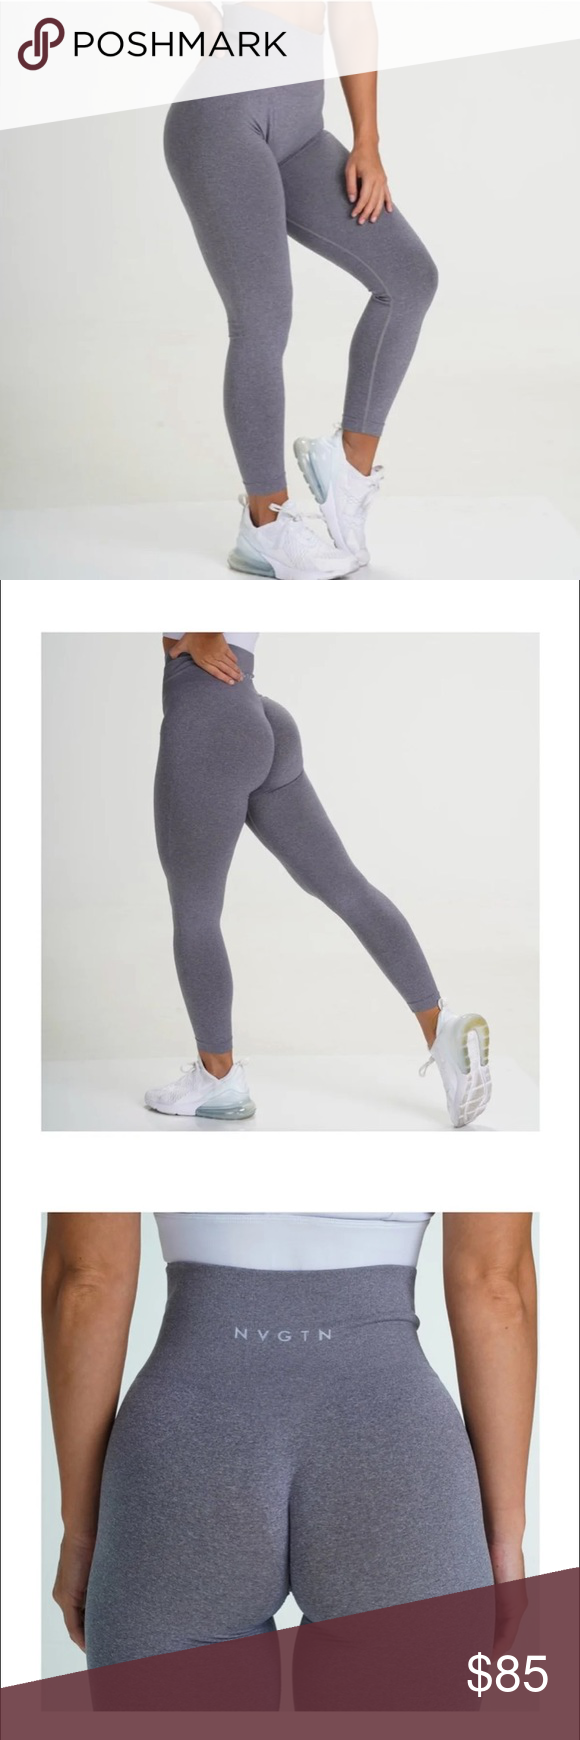 Nvgtn Nv Seamless Legging Not A Fan Of Contouring Not A Problem Our New Nv Seamless Leggings Feature A Leggings Are Not Pants Seamless Leggings Grey Leggings